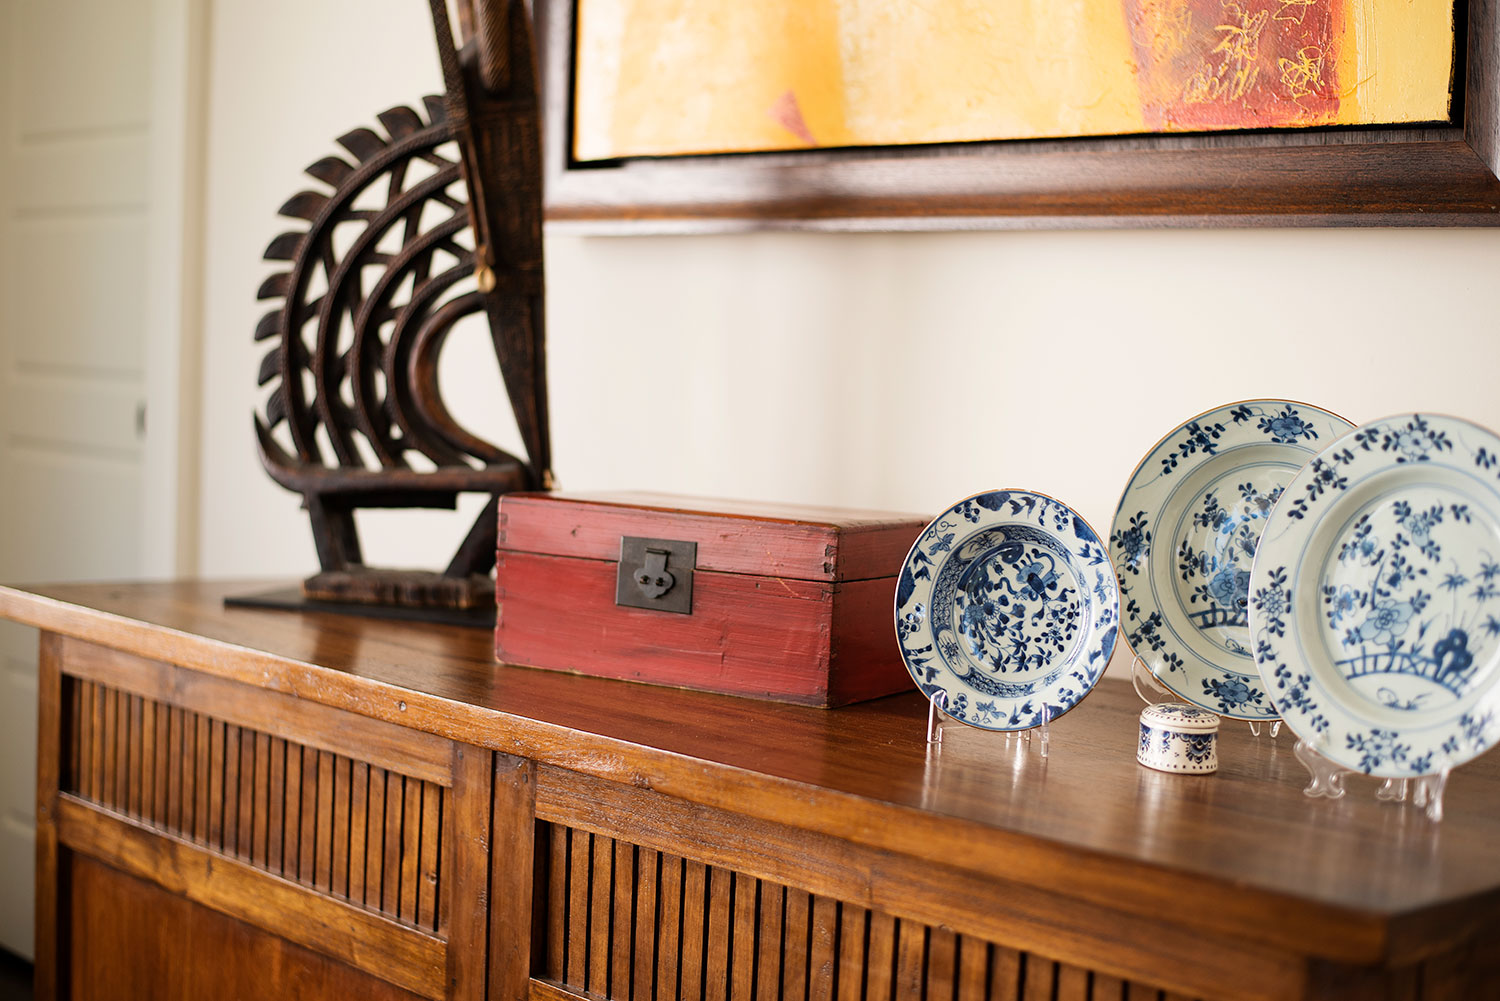 Wood sideboard displaying antelope sculpture and china plates